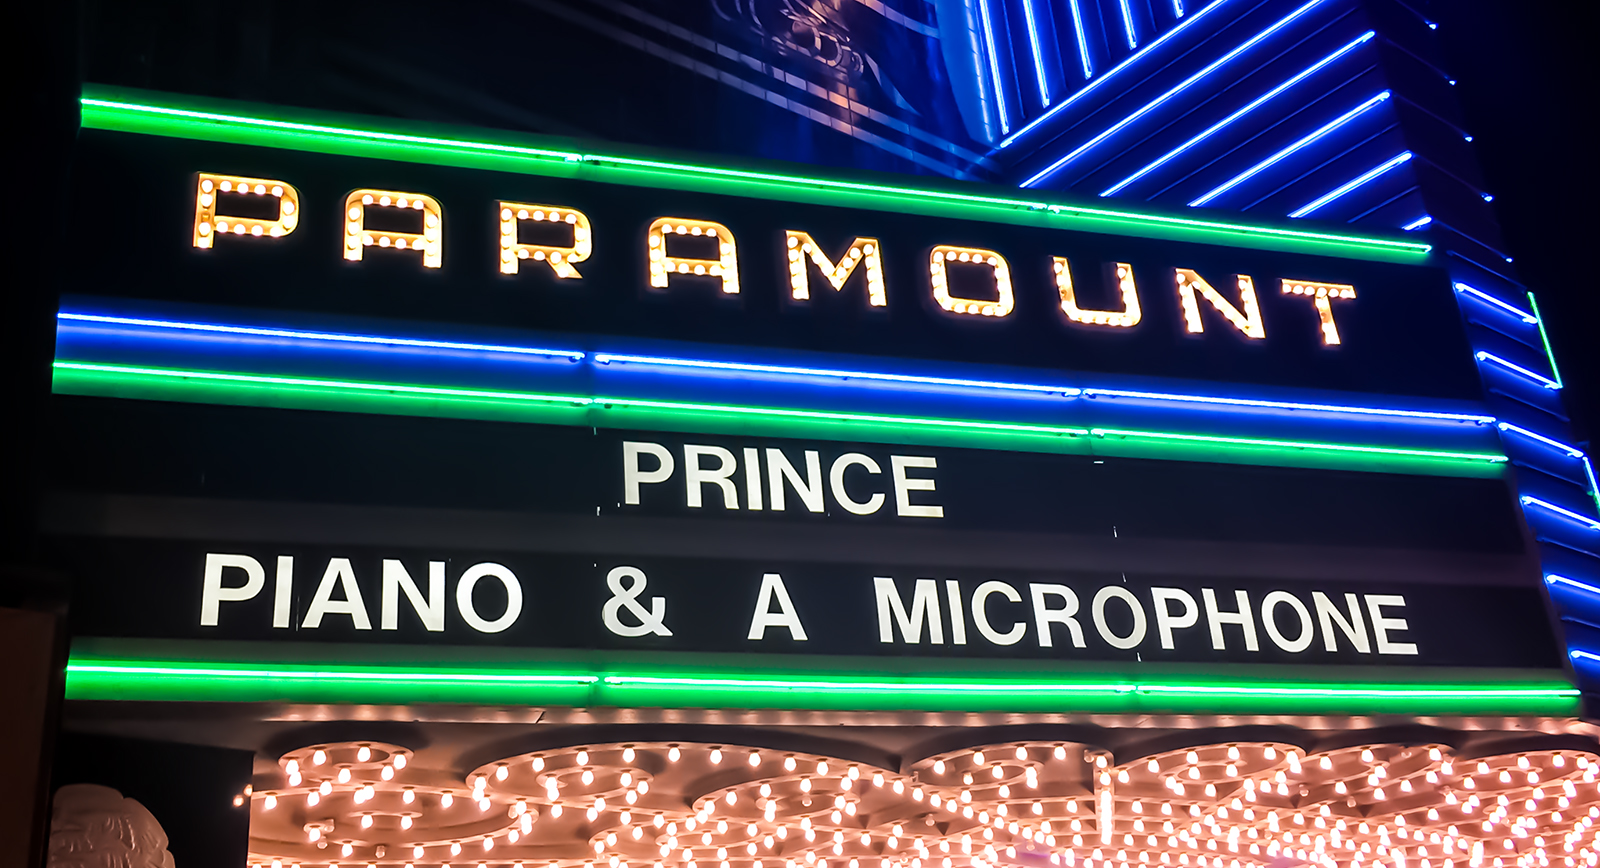 Prince-Piano-and-a-Microphone-2016-Concert-Tour-Paramount-Theatre-Oakland-Concert-Review-FI